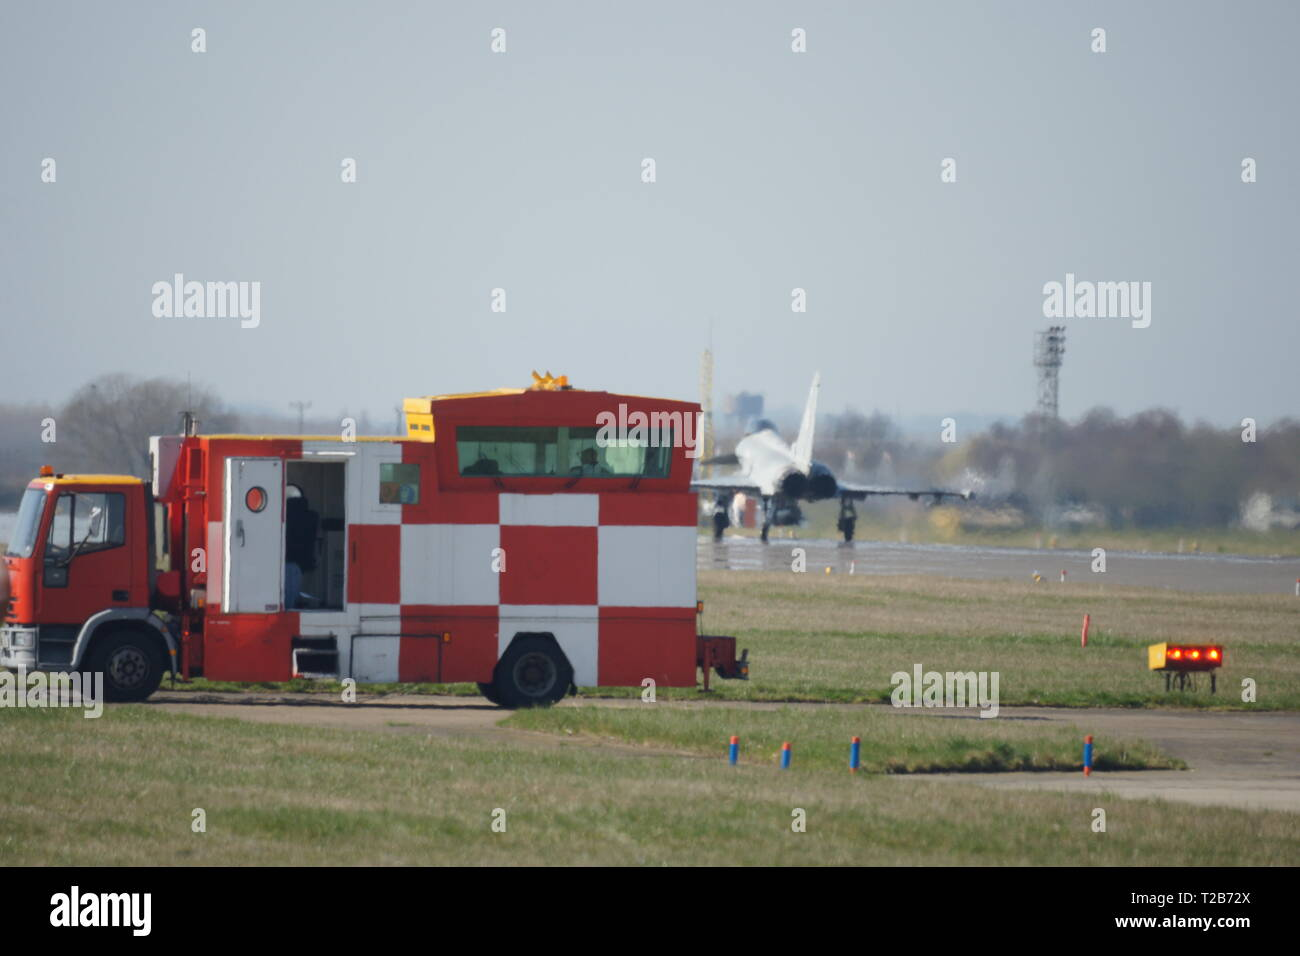 mobile military air trafic control truck, RAF coningsby - Stock Image